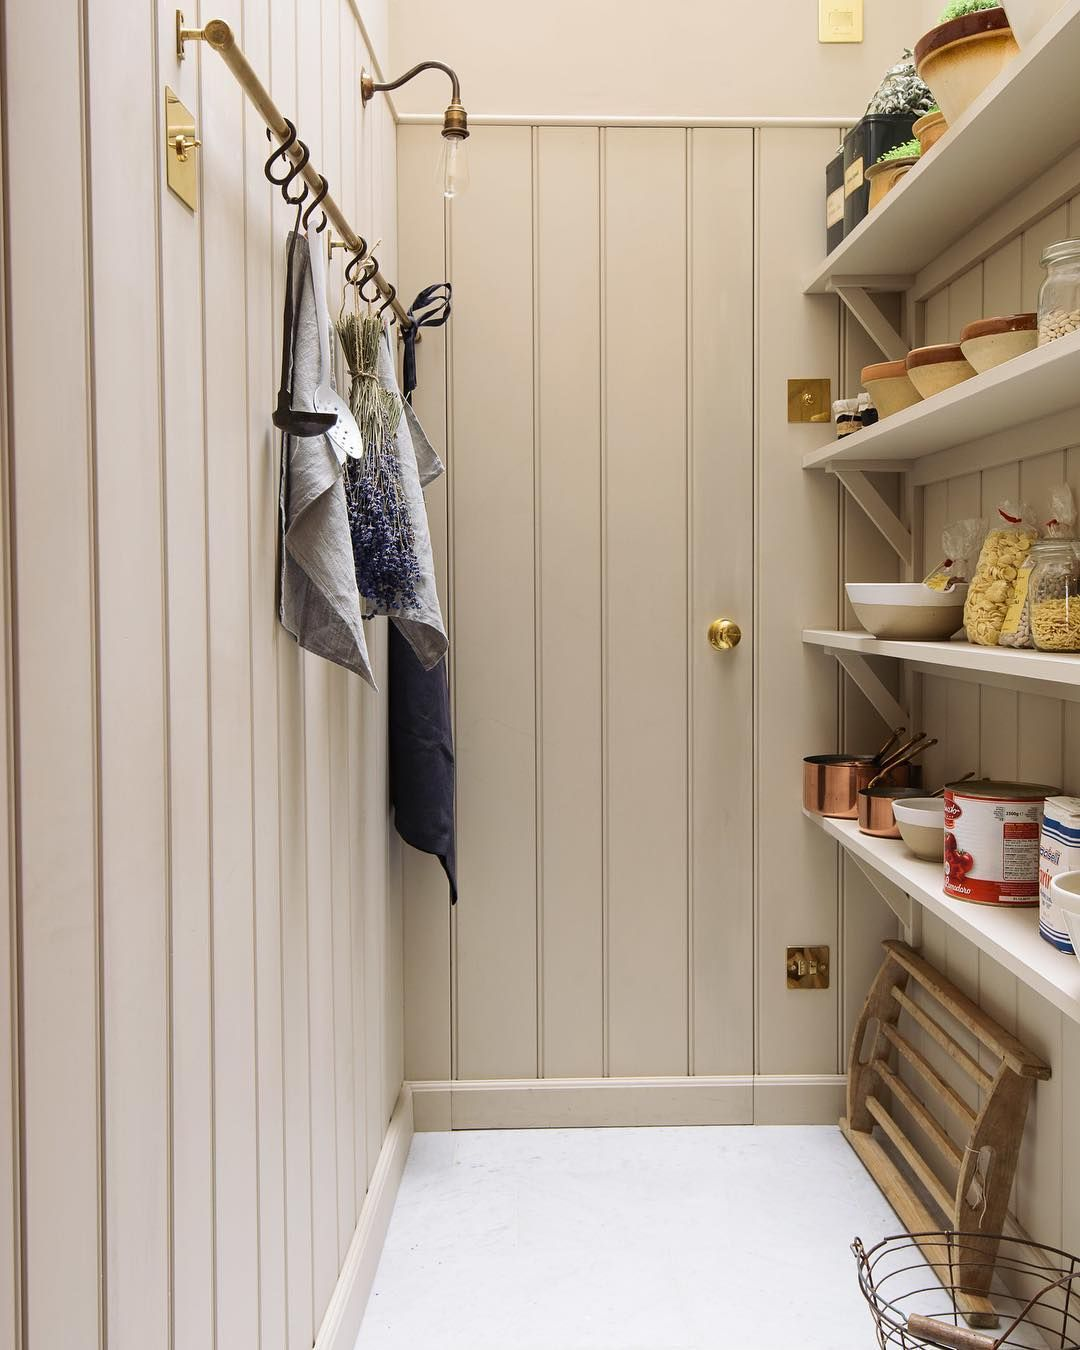 Devol Kitchens On Instagram Tongue And Groove Panelling Is An Easy Way To Make A Room Look Speci Tongue And Groove Panelling Devol Kitchens Tongue And Groove